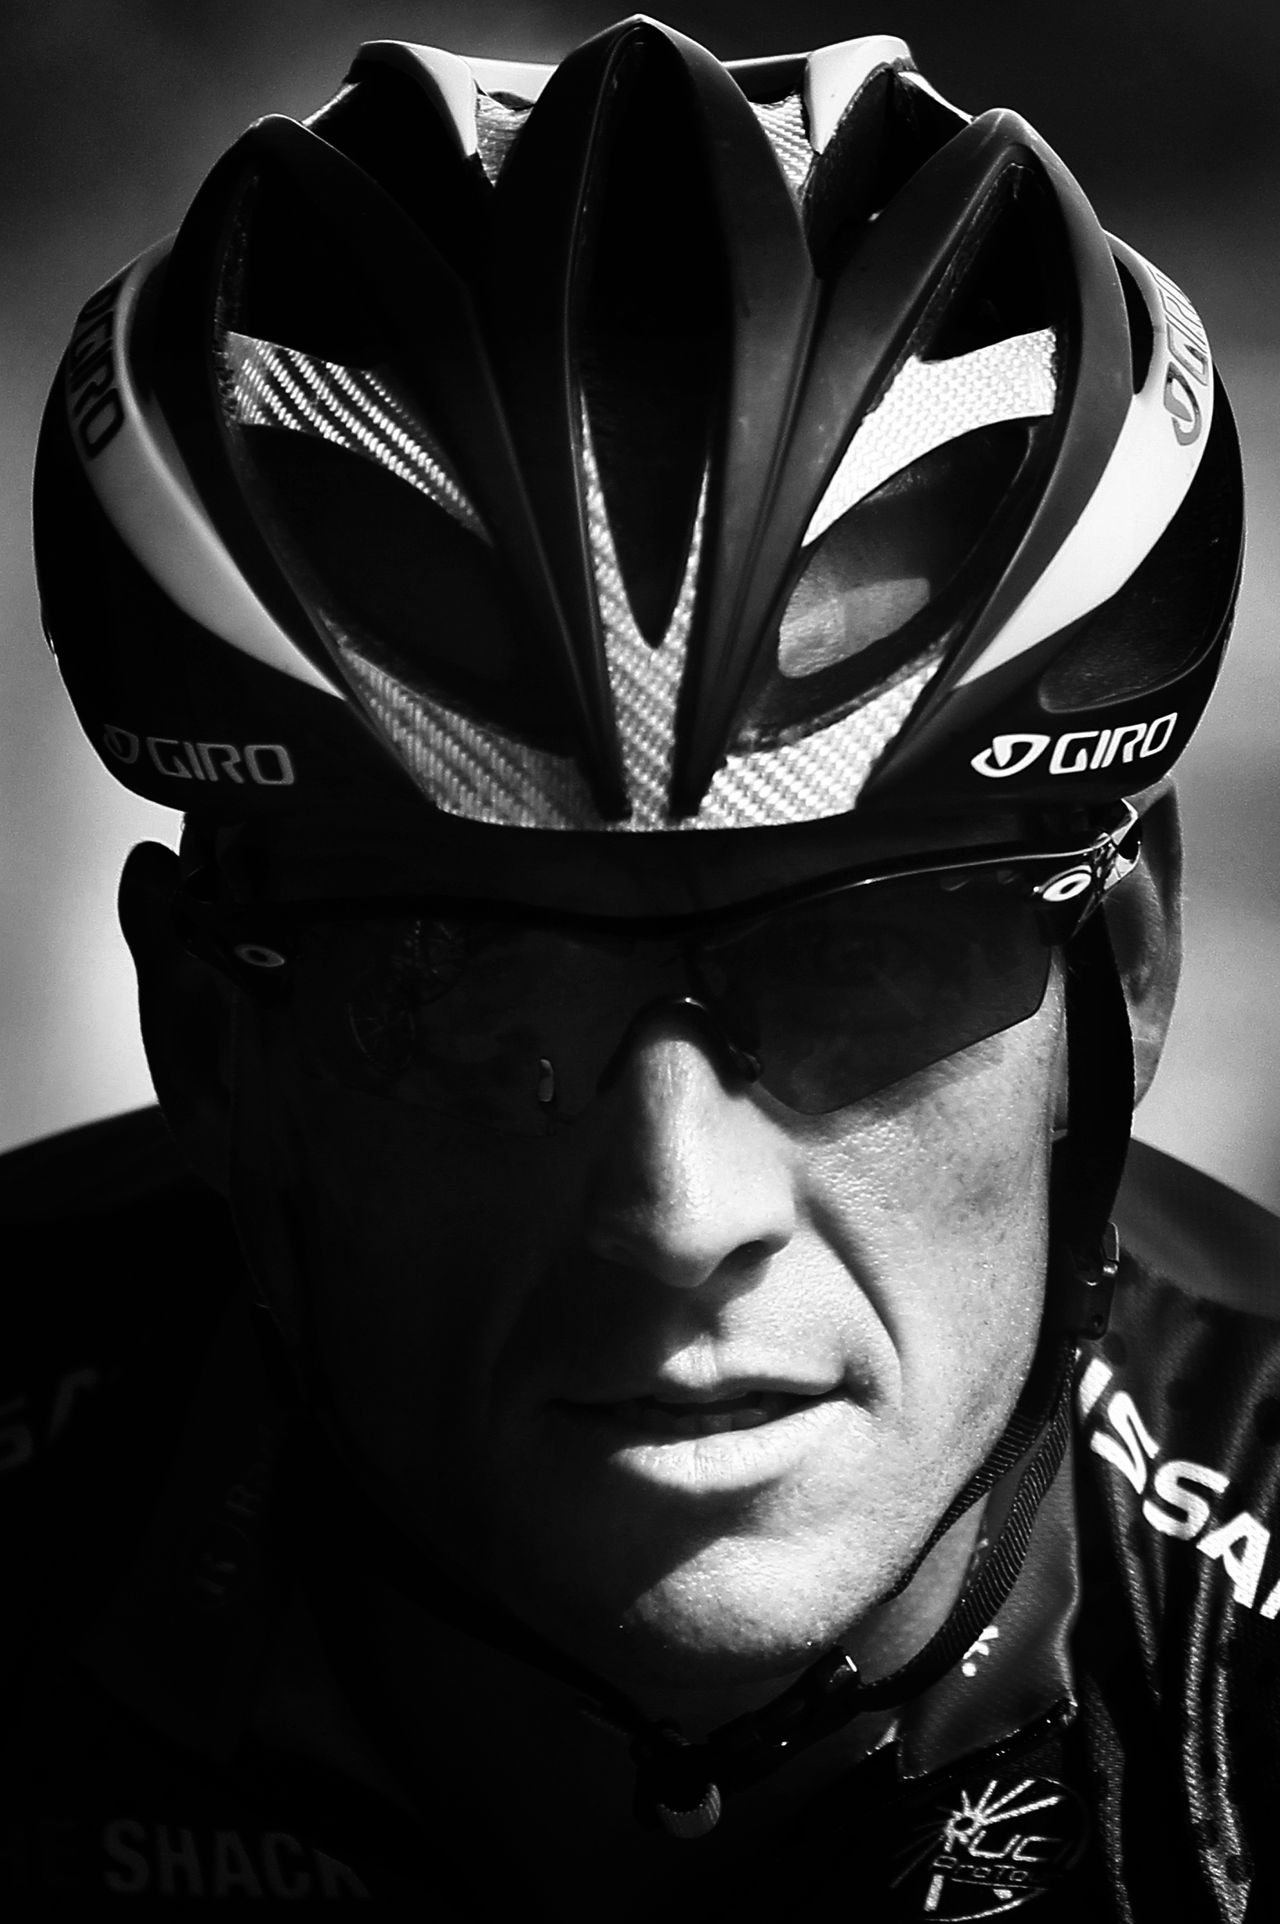 """(FILES) - A picture taken on July 1, 2010 in Ridderkerk, shows seven-time Tour de France winner, US Lance Armstrong pictured during a training session. Seven-time Tour de France champion Lance Armstrong confirmed on June 13, 2012 he is facing new doping allegations brought by the US Anti-Doping Agency that could result in the stripping of his titles. The Washington Post was among the media outlets reporting on June 13, 2012 that USADA had written to Armstrong saying blood samples taken from him in 2009 and 2010 -- when he came out of retirement -- were """"fully consistent with blood manipulation including EPO use and/or blood transfusions."""" AFP PHOTO / JOEL SAGET"""